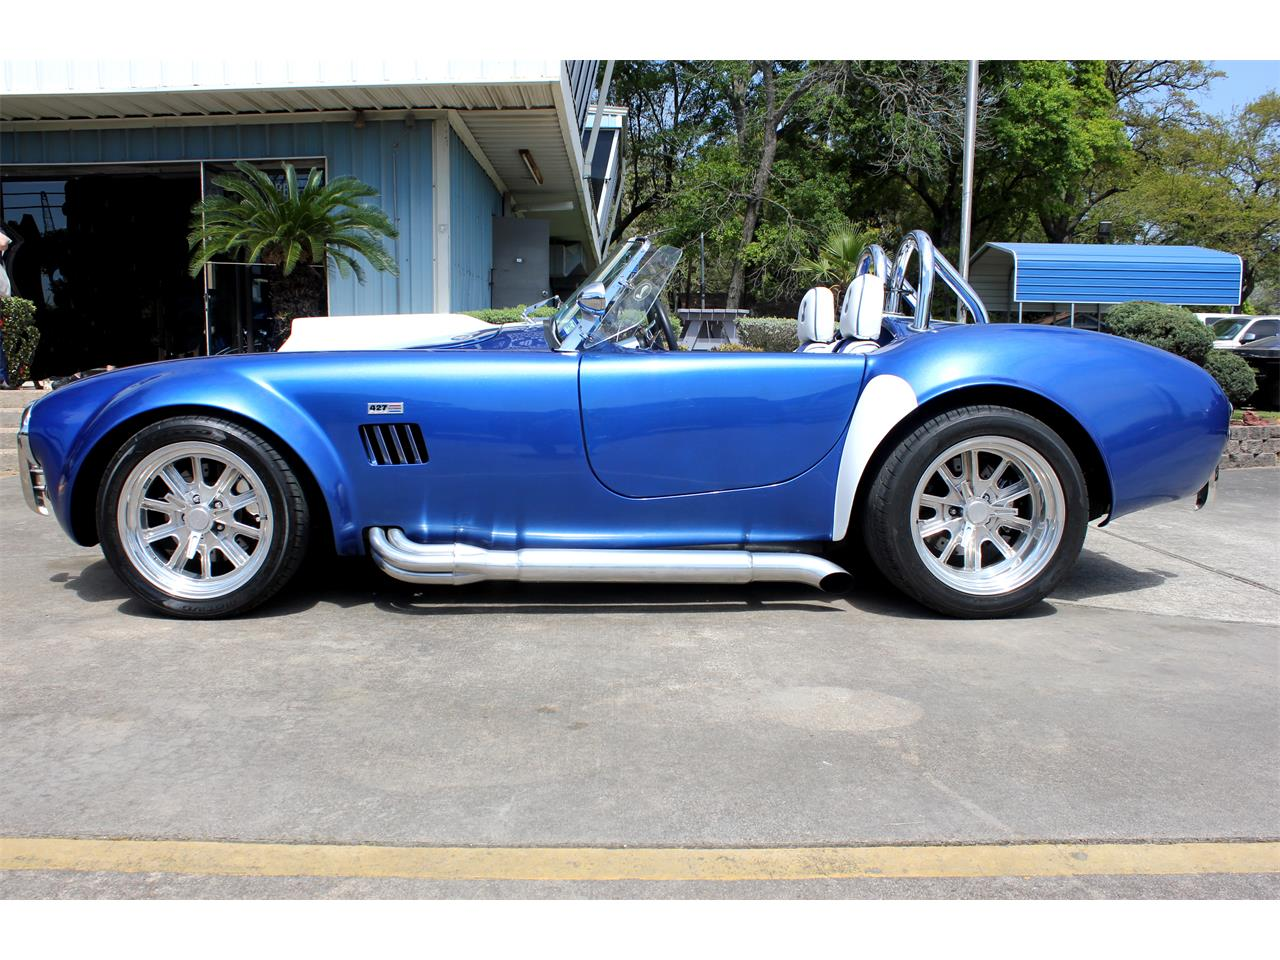 Large Picture of 1966 Shelby Cobra Replica - $70,000.00 Offered by a Private Seller - Q2D3